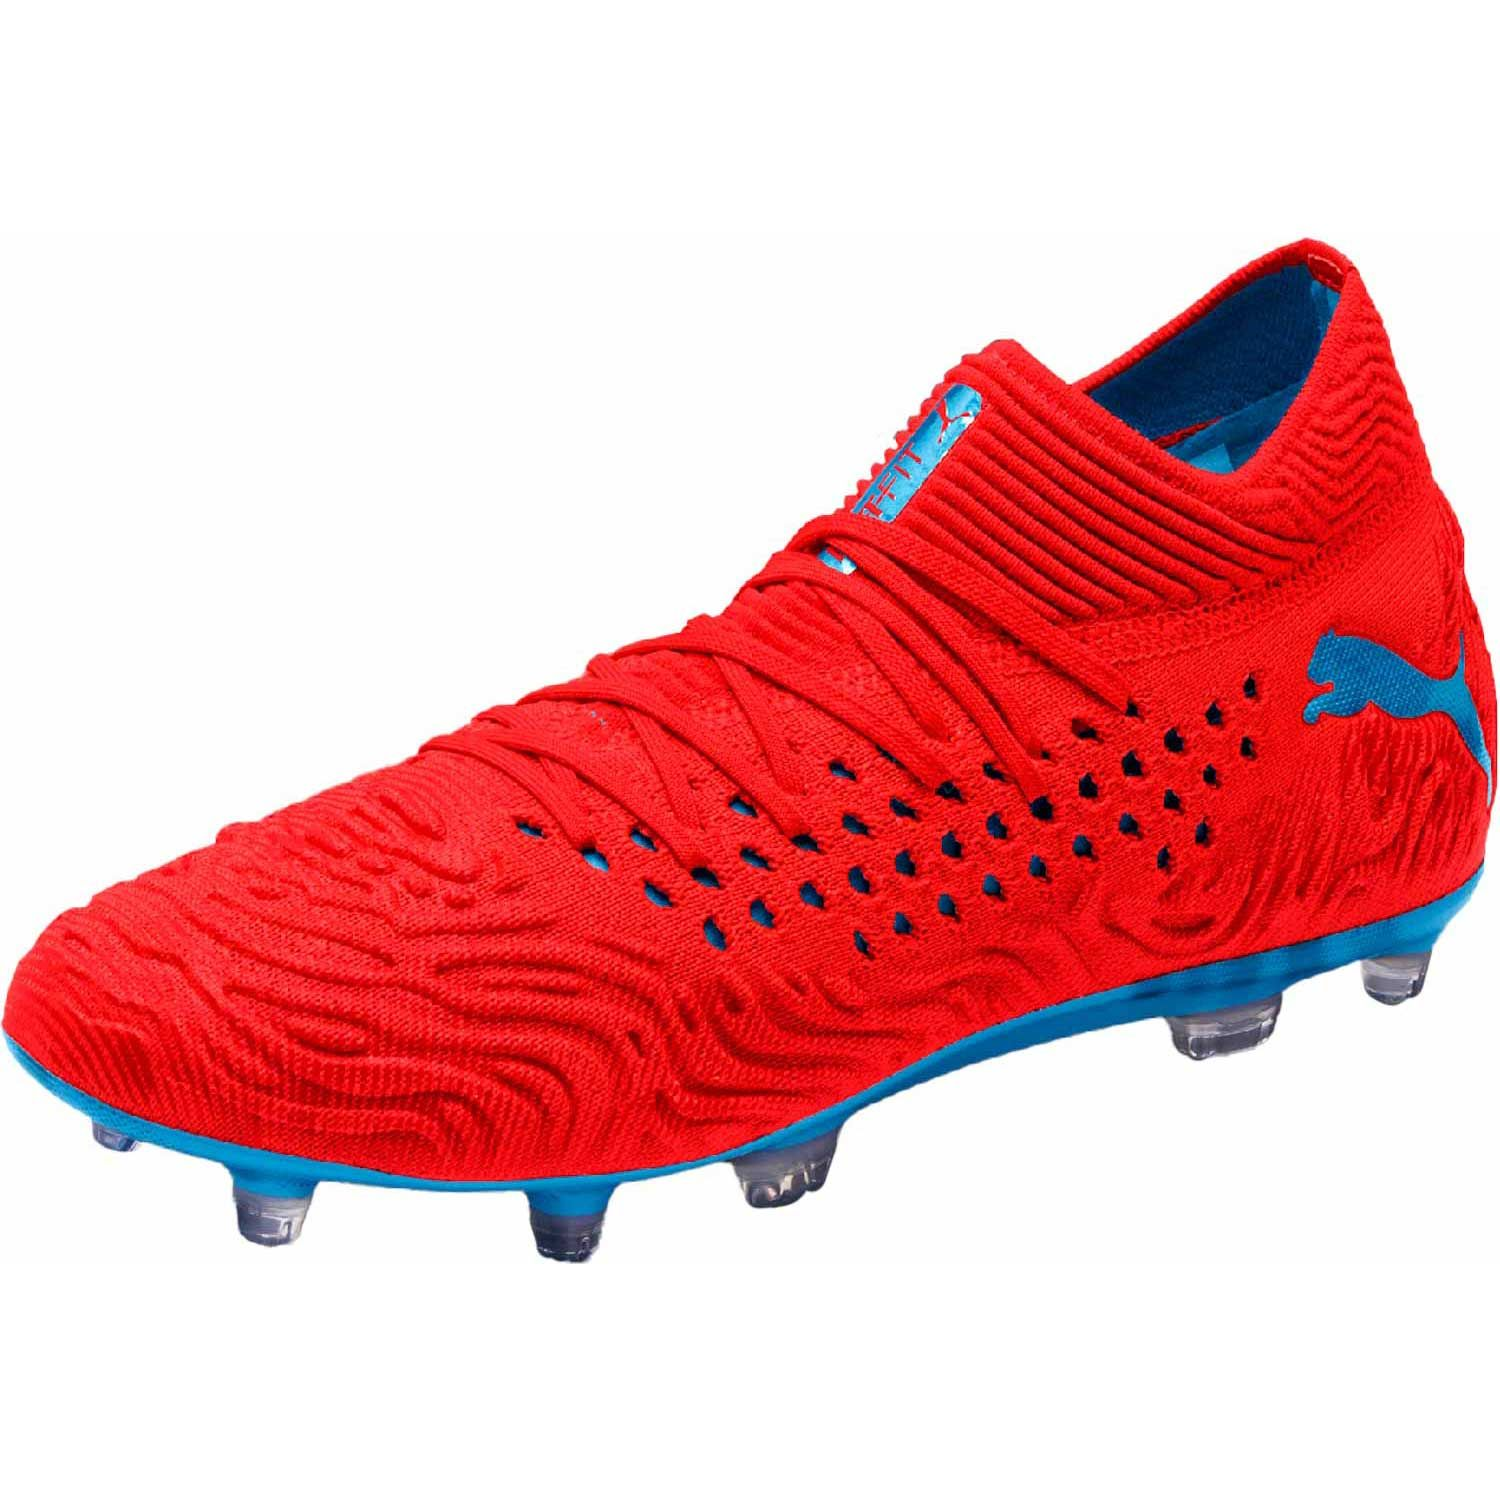 Puma Future 19 1 Netfit Fg Power Up Soccerpro Best Soccer Cleats Football Shoes Puma